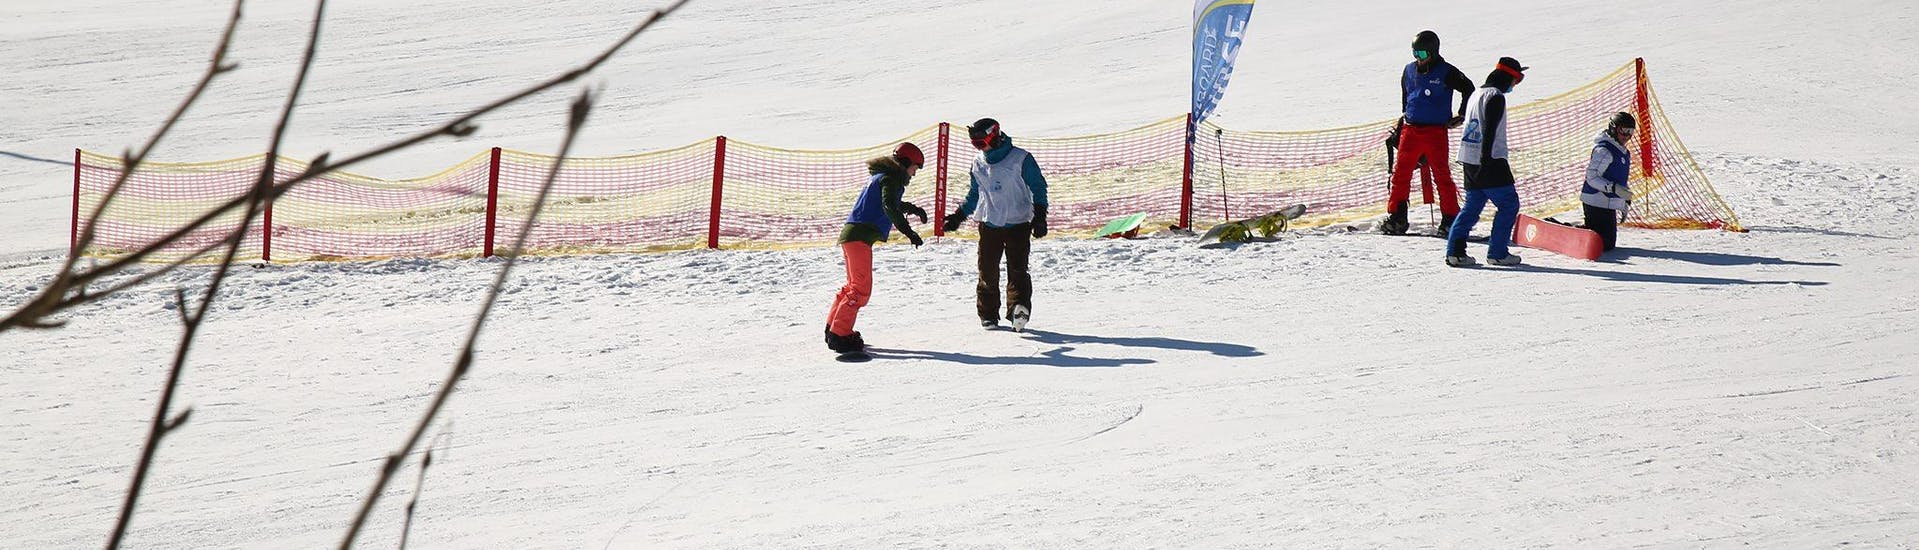 Snowboard Lessons for Kids & Adults - First Timer - Full Day with Learn2Ride Snowboardschule Oberhof - Hero image